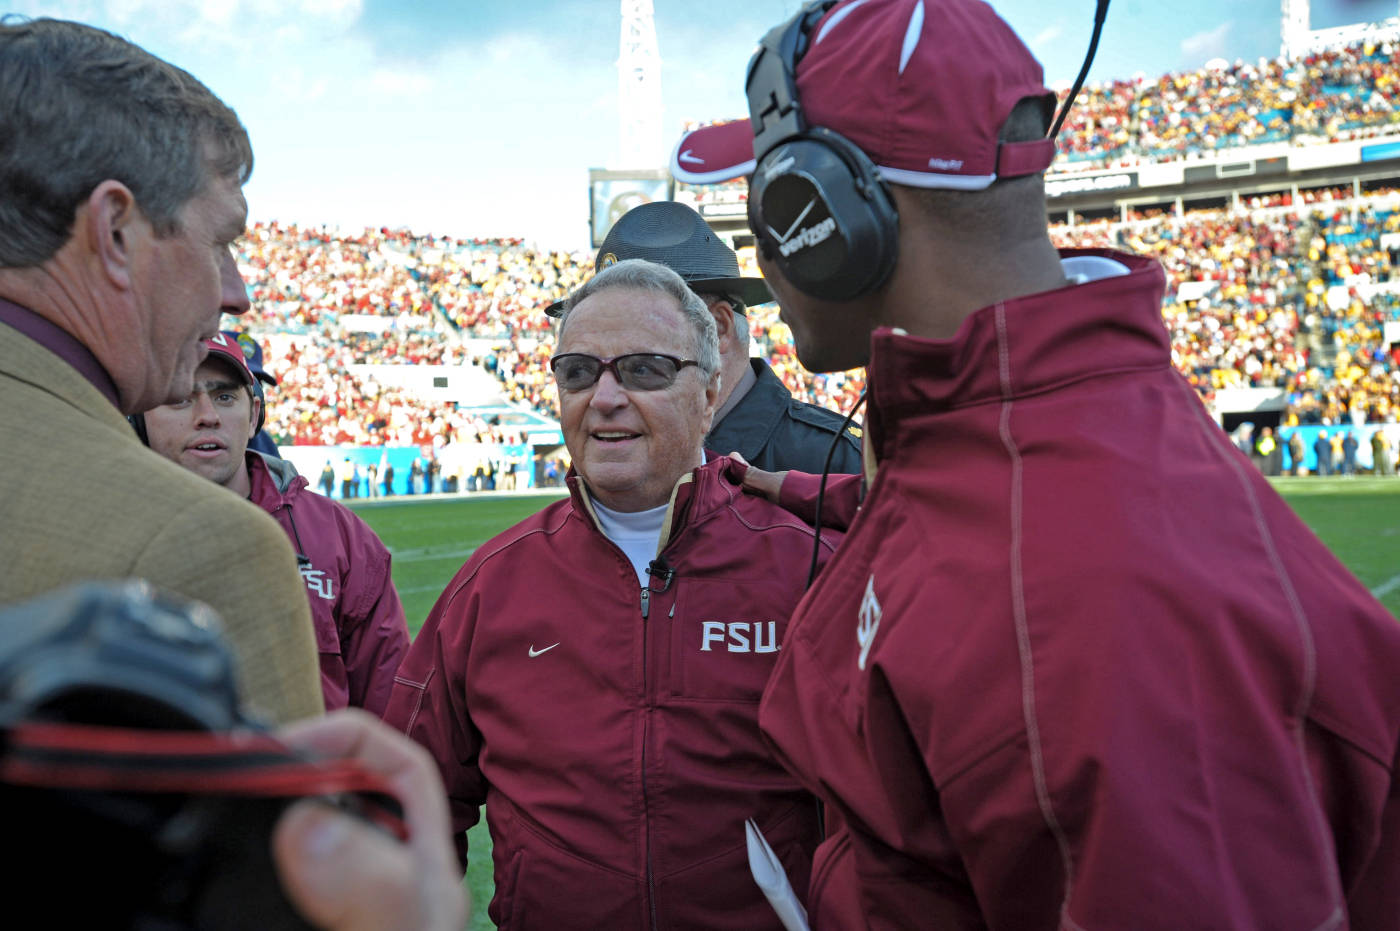 Athletics Director Randy Spetman greets Coach Bowden on the sideline